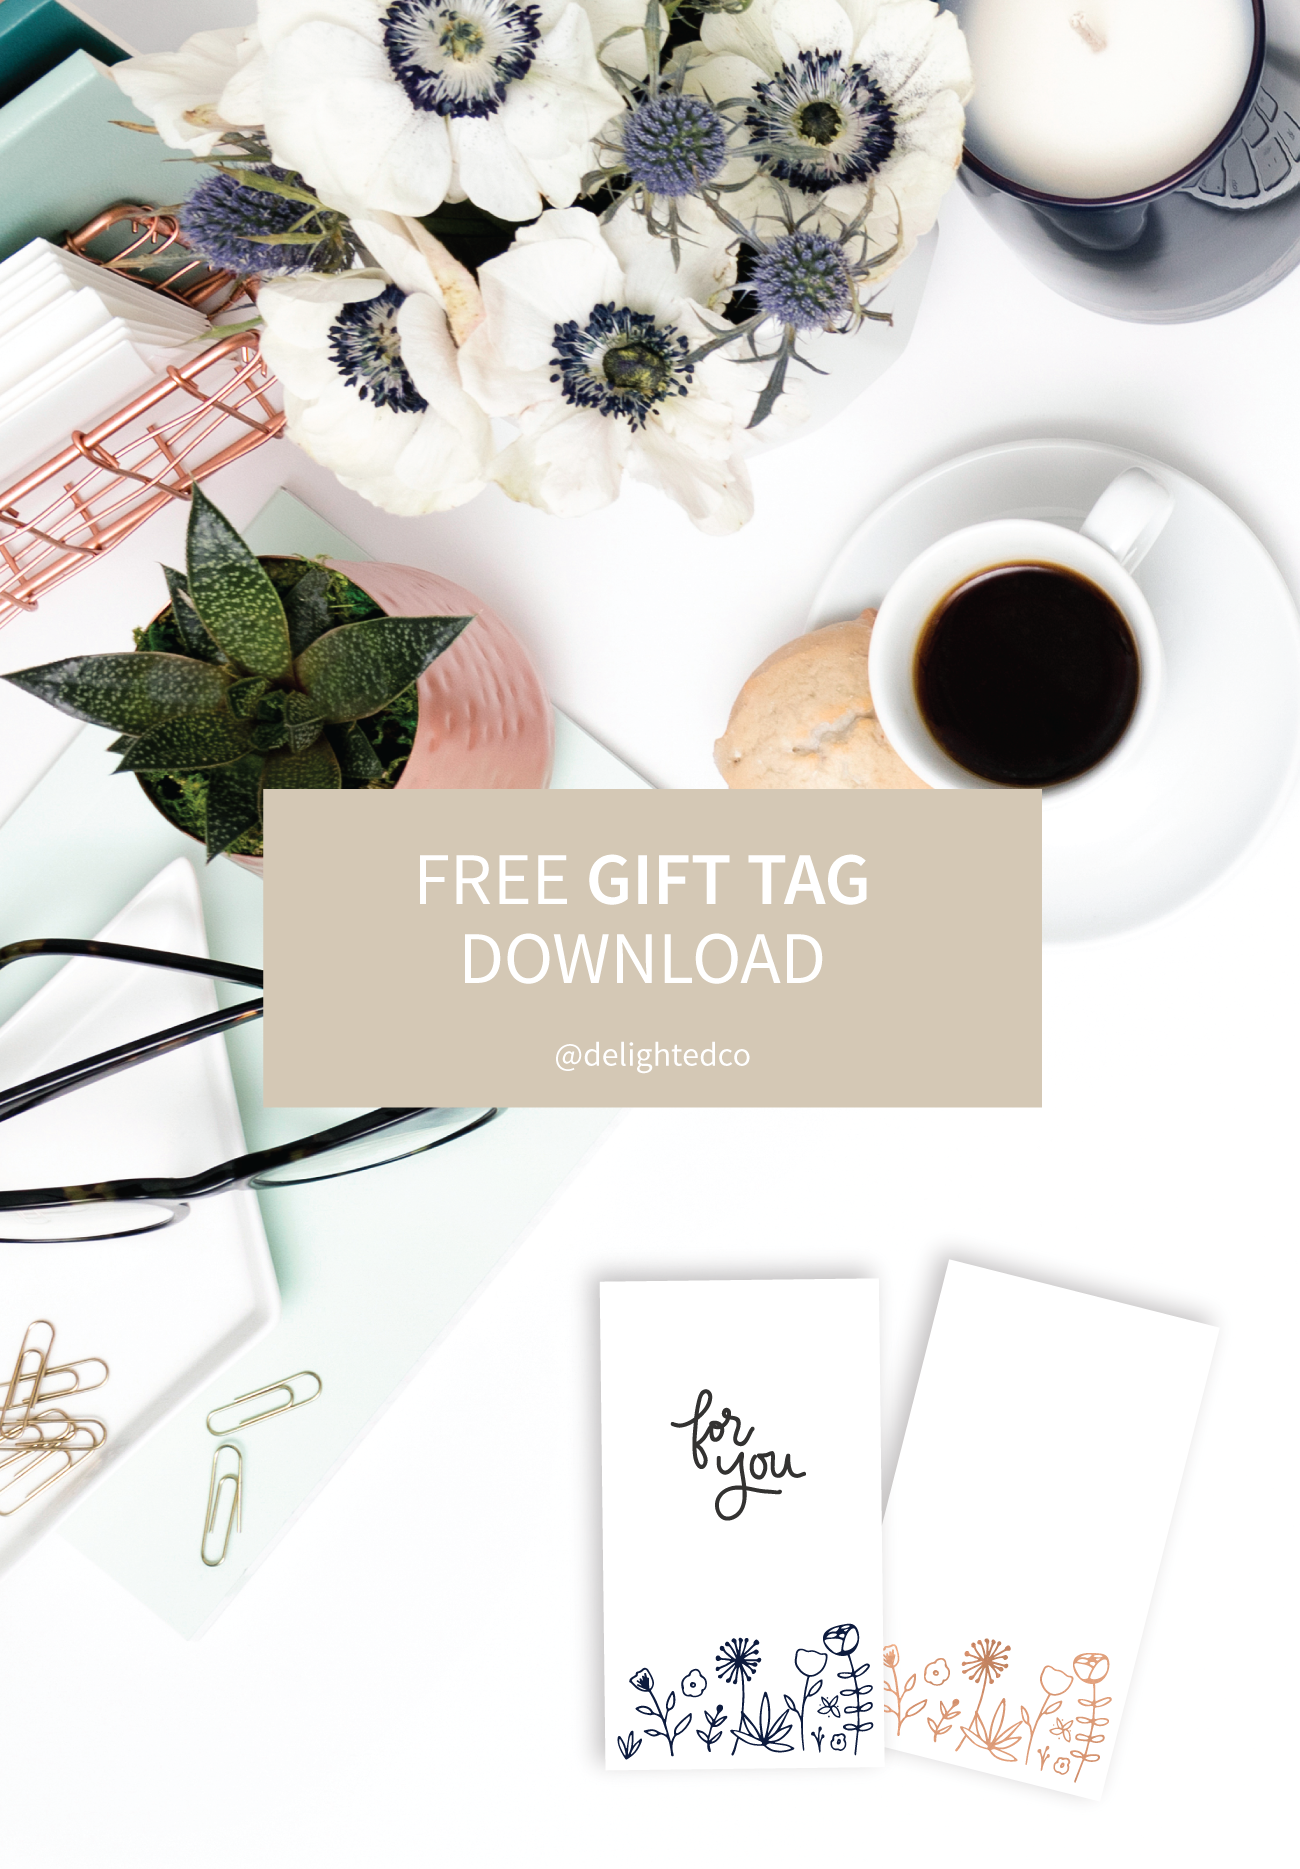 Free Download: Gift tags for any season from Delighted Creative Co.